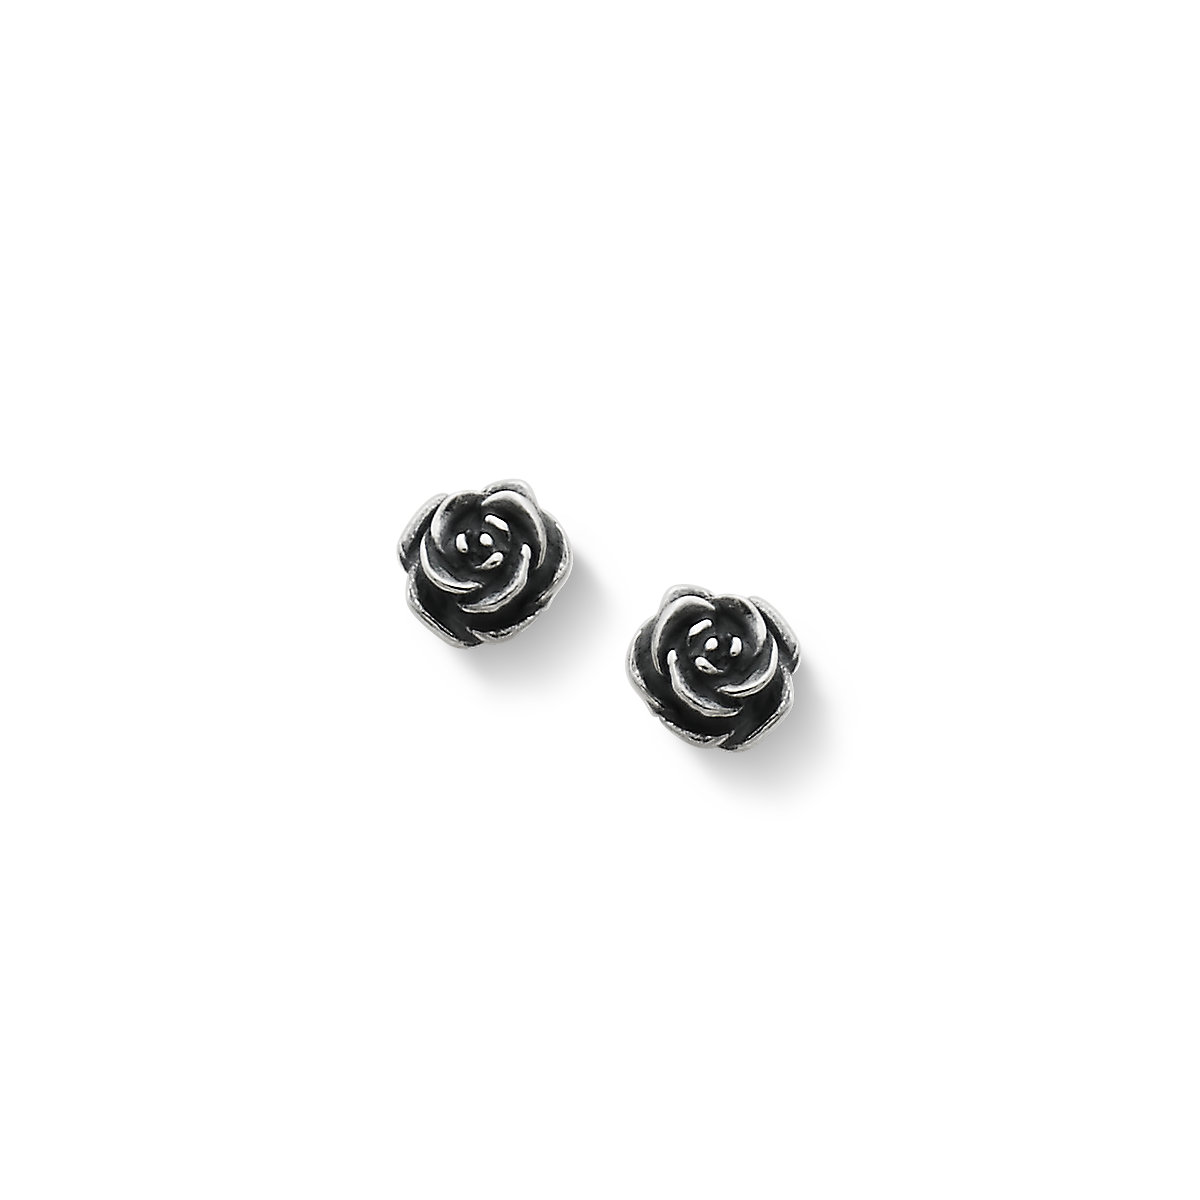 Silver Rose Studs Silver Rose Hoops Charm Earrings Silver Rose Earrings Silver Charm Earrings Silver Rose Earrings